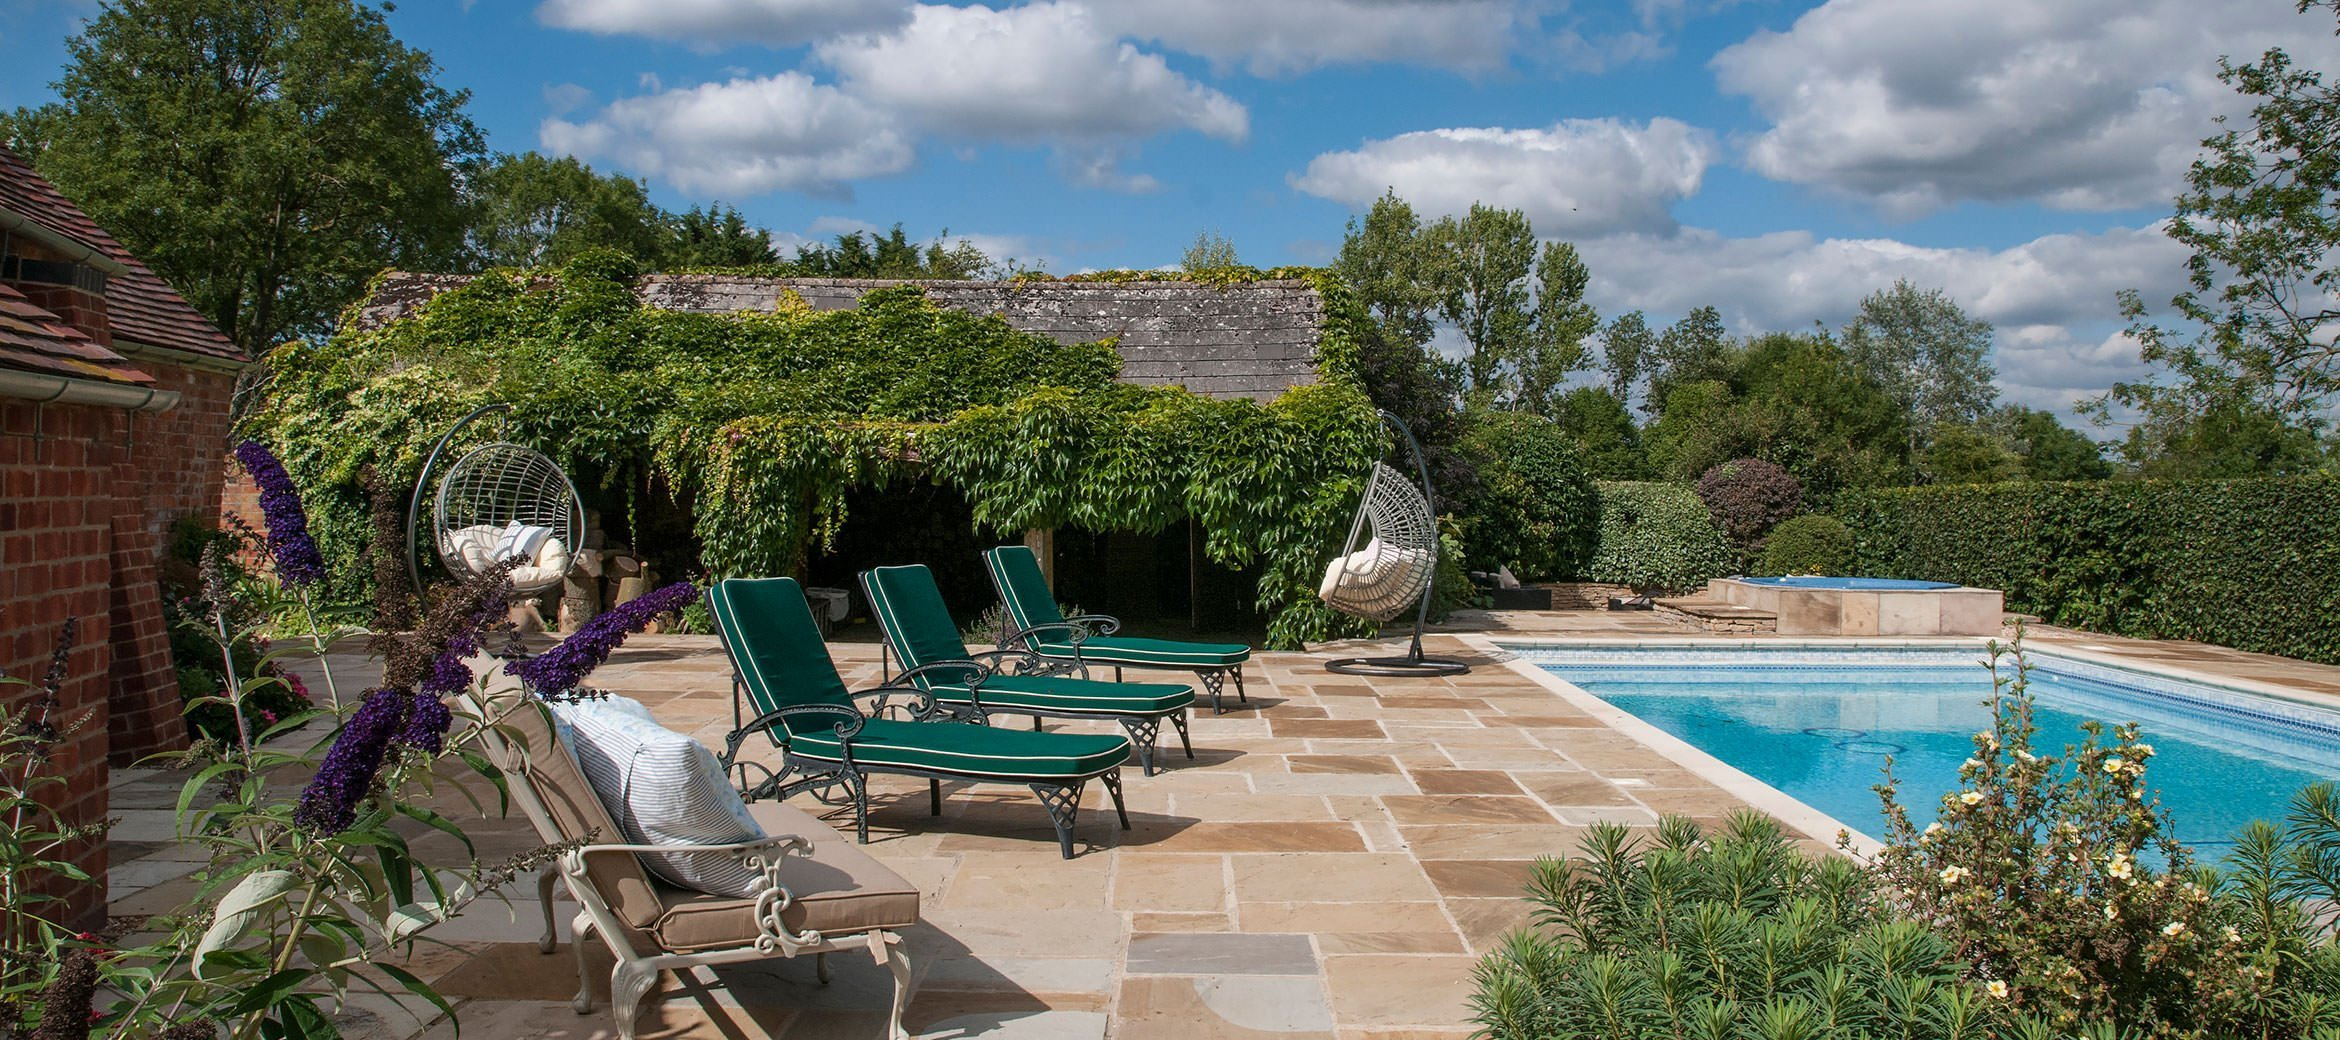 old-rectory-broadway-pool-hot-tub-loungers